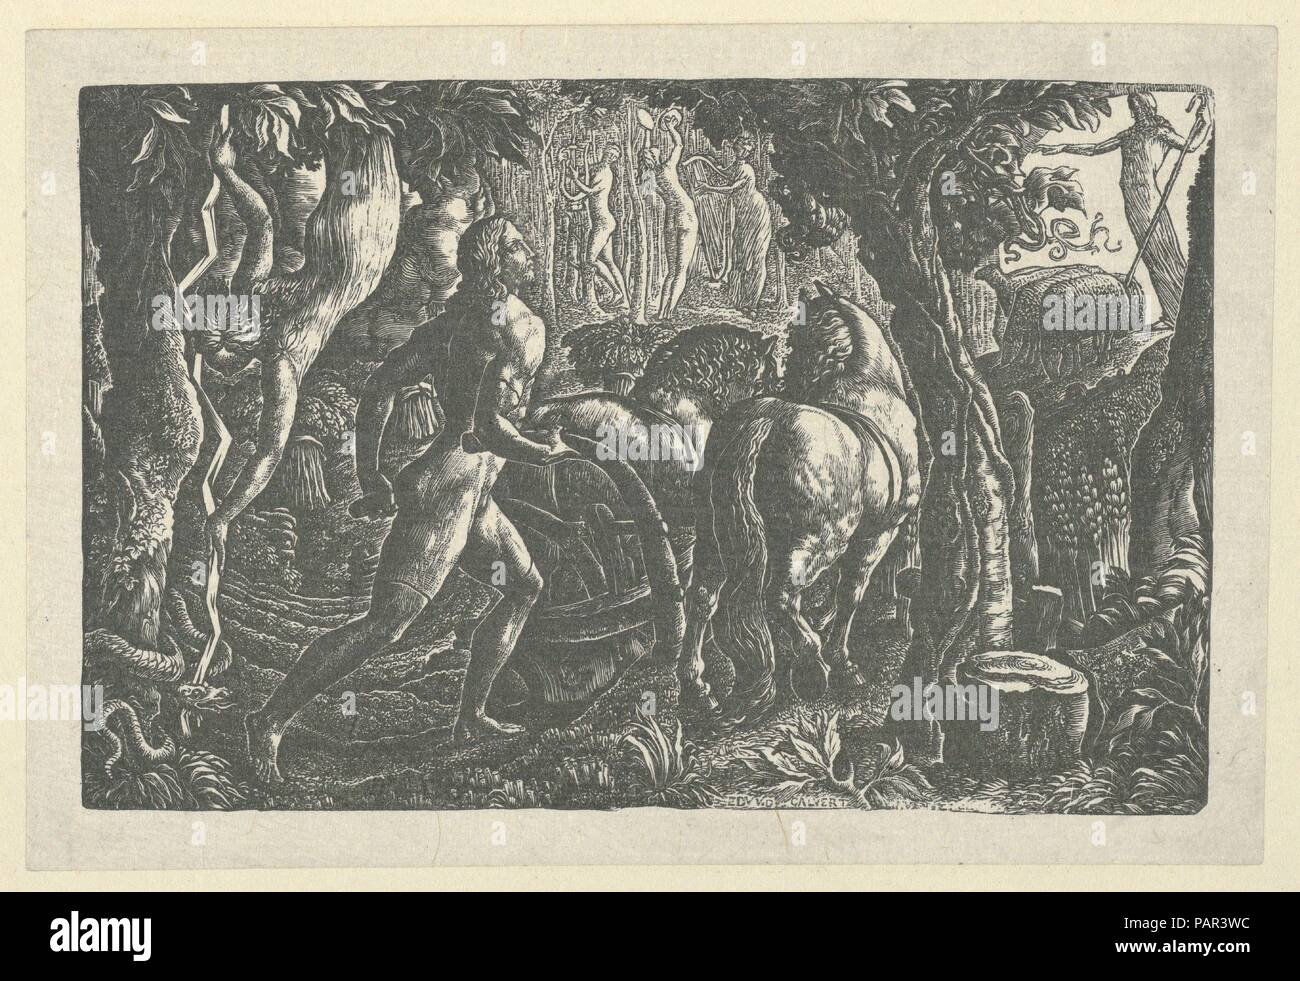 The Ploughman. Artist: Edward Calvert (British, Appledore, Devon 1799-1833 Hackney (London)). Dimensions: image: 3 1/4 x 5 in. (8.3 x 12.8 cm)  sheet: 3 3/4 x 5 1/2 in. (9.6 x 14 cm). Date: 1827.  In this richly detailed engraving, Calvert conjured an idealized medieval world. Made in the weeks immediately following Blake's death, The Ploughman manifests Calvert's affirmation of his own artistic vocation: the farmer who cuts furrows in the soil represents the engraver who incises lines in copper plates. This print's full title, The Ploughman, or Christian Ploughing the Last Furrow of Life, all Stock Photo